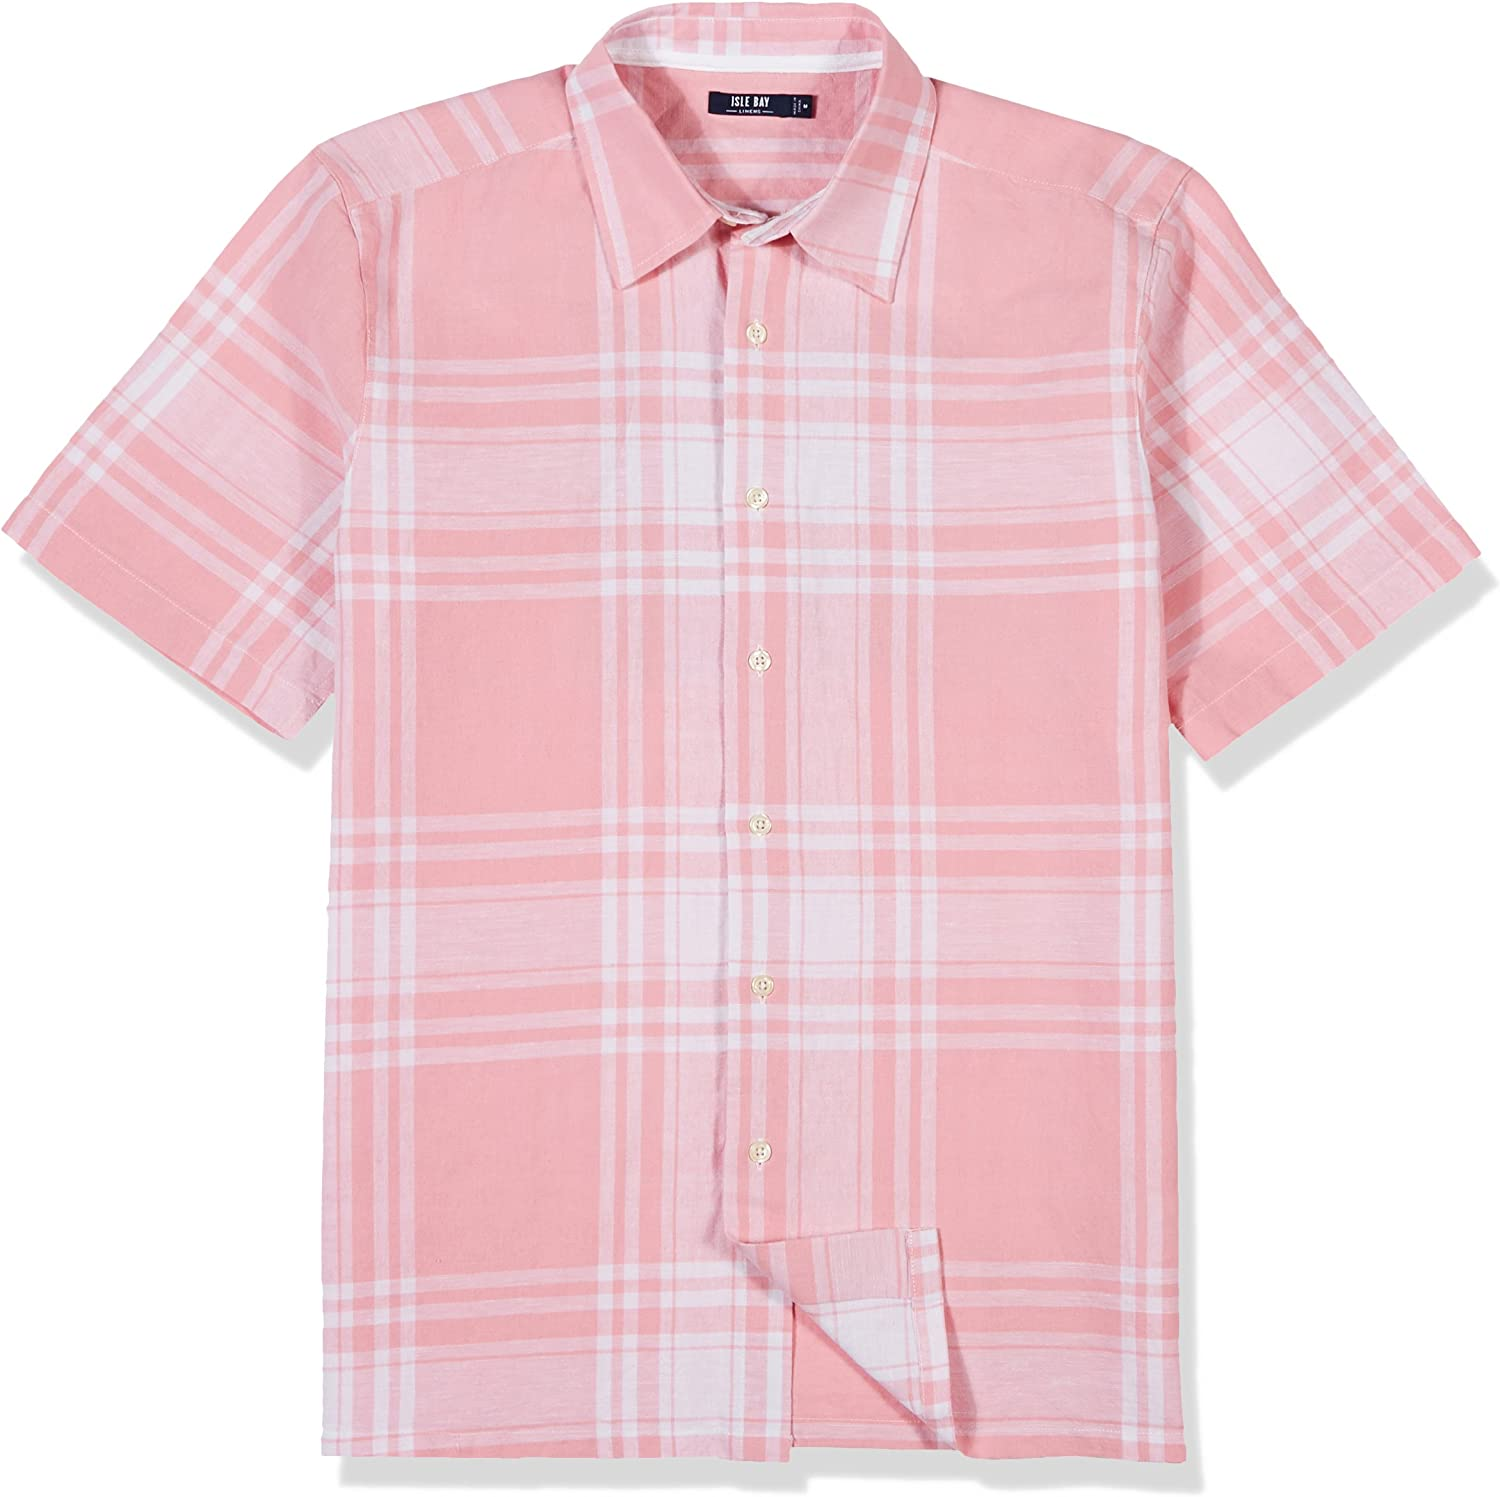 Isle Bay Linens Mens Short Sleeve Plaid Woven Linen Cotton Blend Casual Shirt